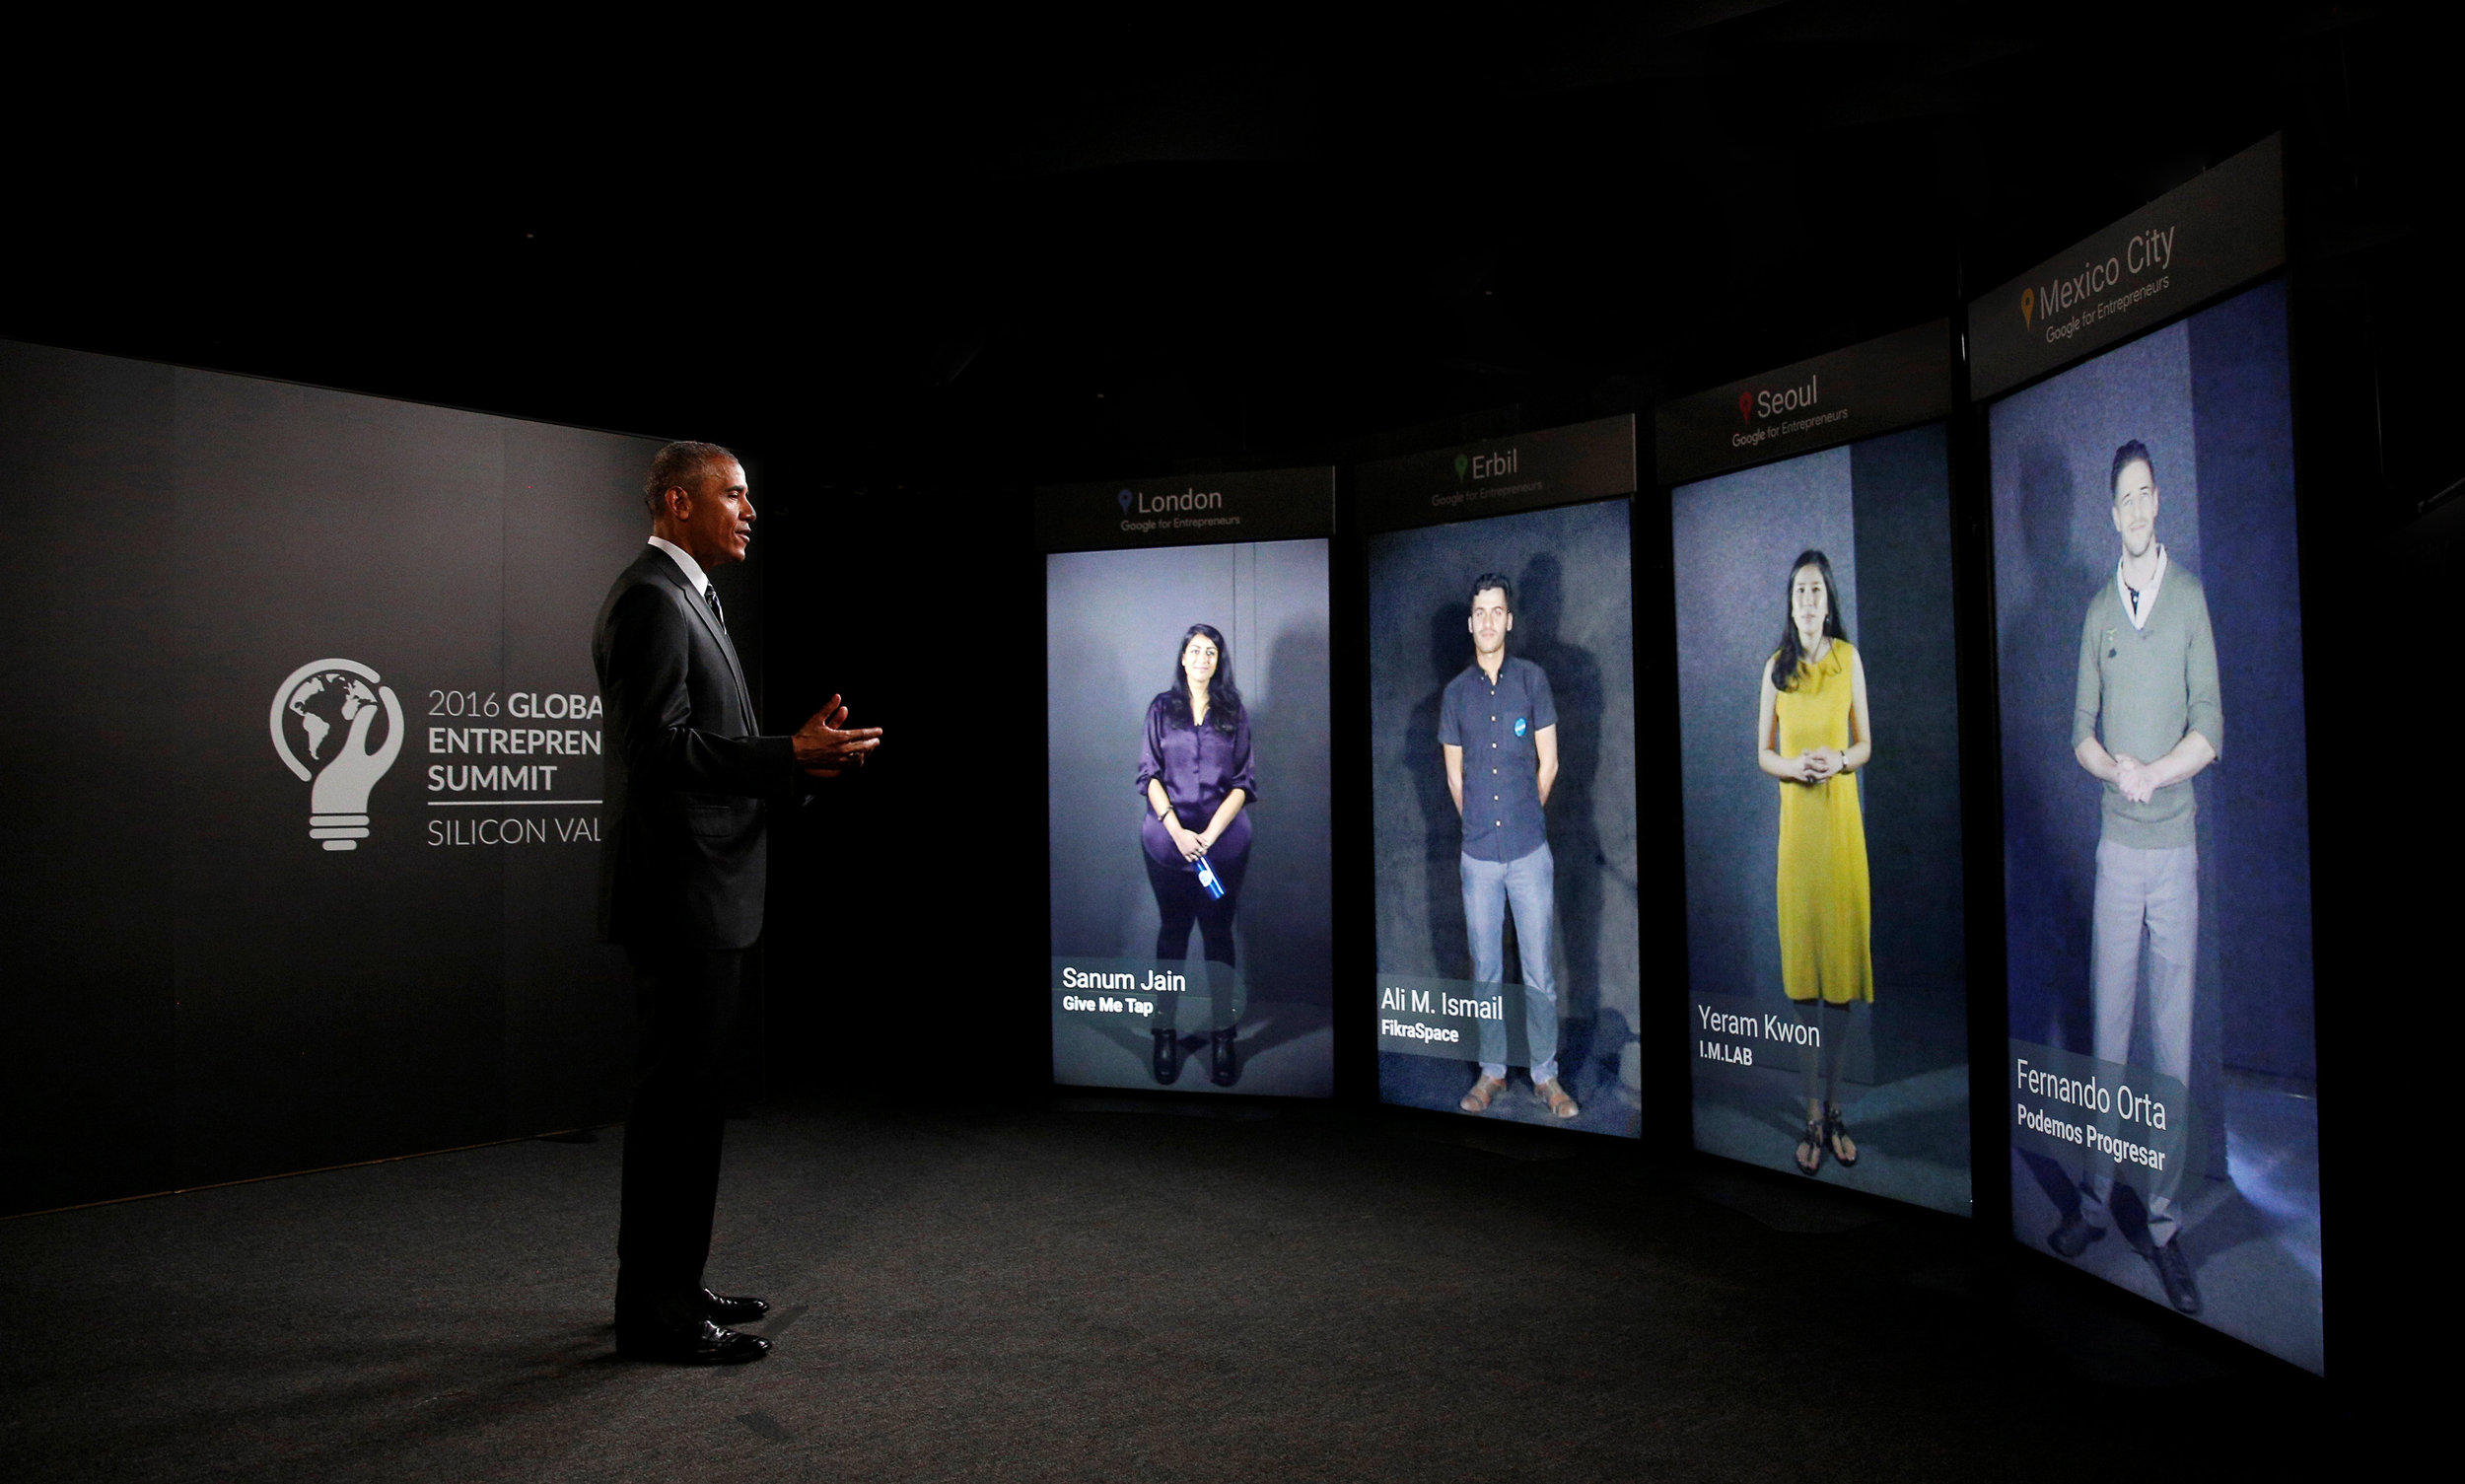 President Obama speaking to entrepreneurs in (from left to right) London, UK; Erbil Iraq; Seoul, South Korea; and Mexico City, Mexico through Portal_Screens at a Global Entrepreneurship Summit event hosted by Google for Entrepreneurs.   Download JPEG (1.5mb)